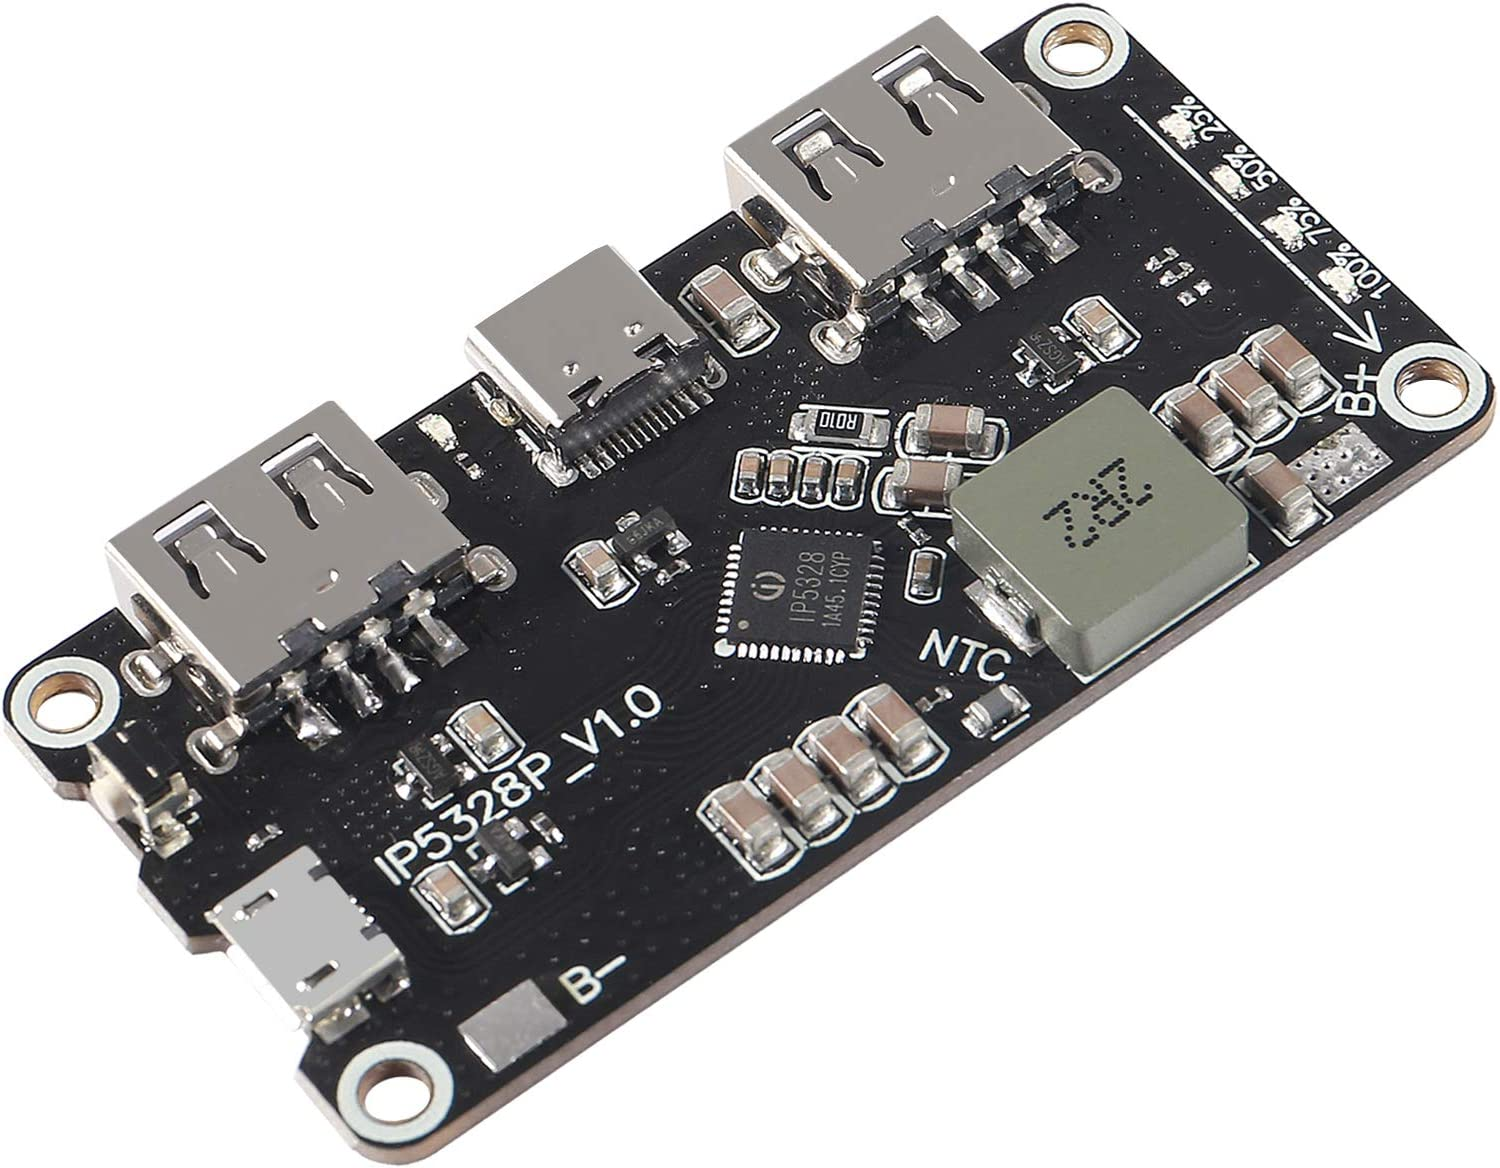 DORHEA Max 68% OFF IP5328P Boost Charging Module Fast 18650 Safety and trust USB Battery Dual